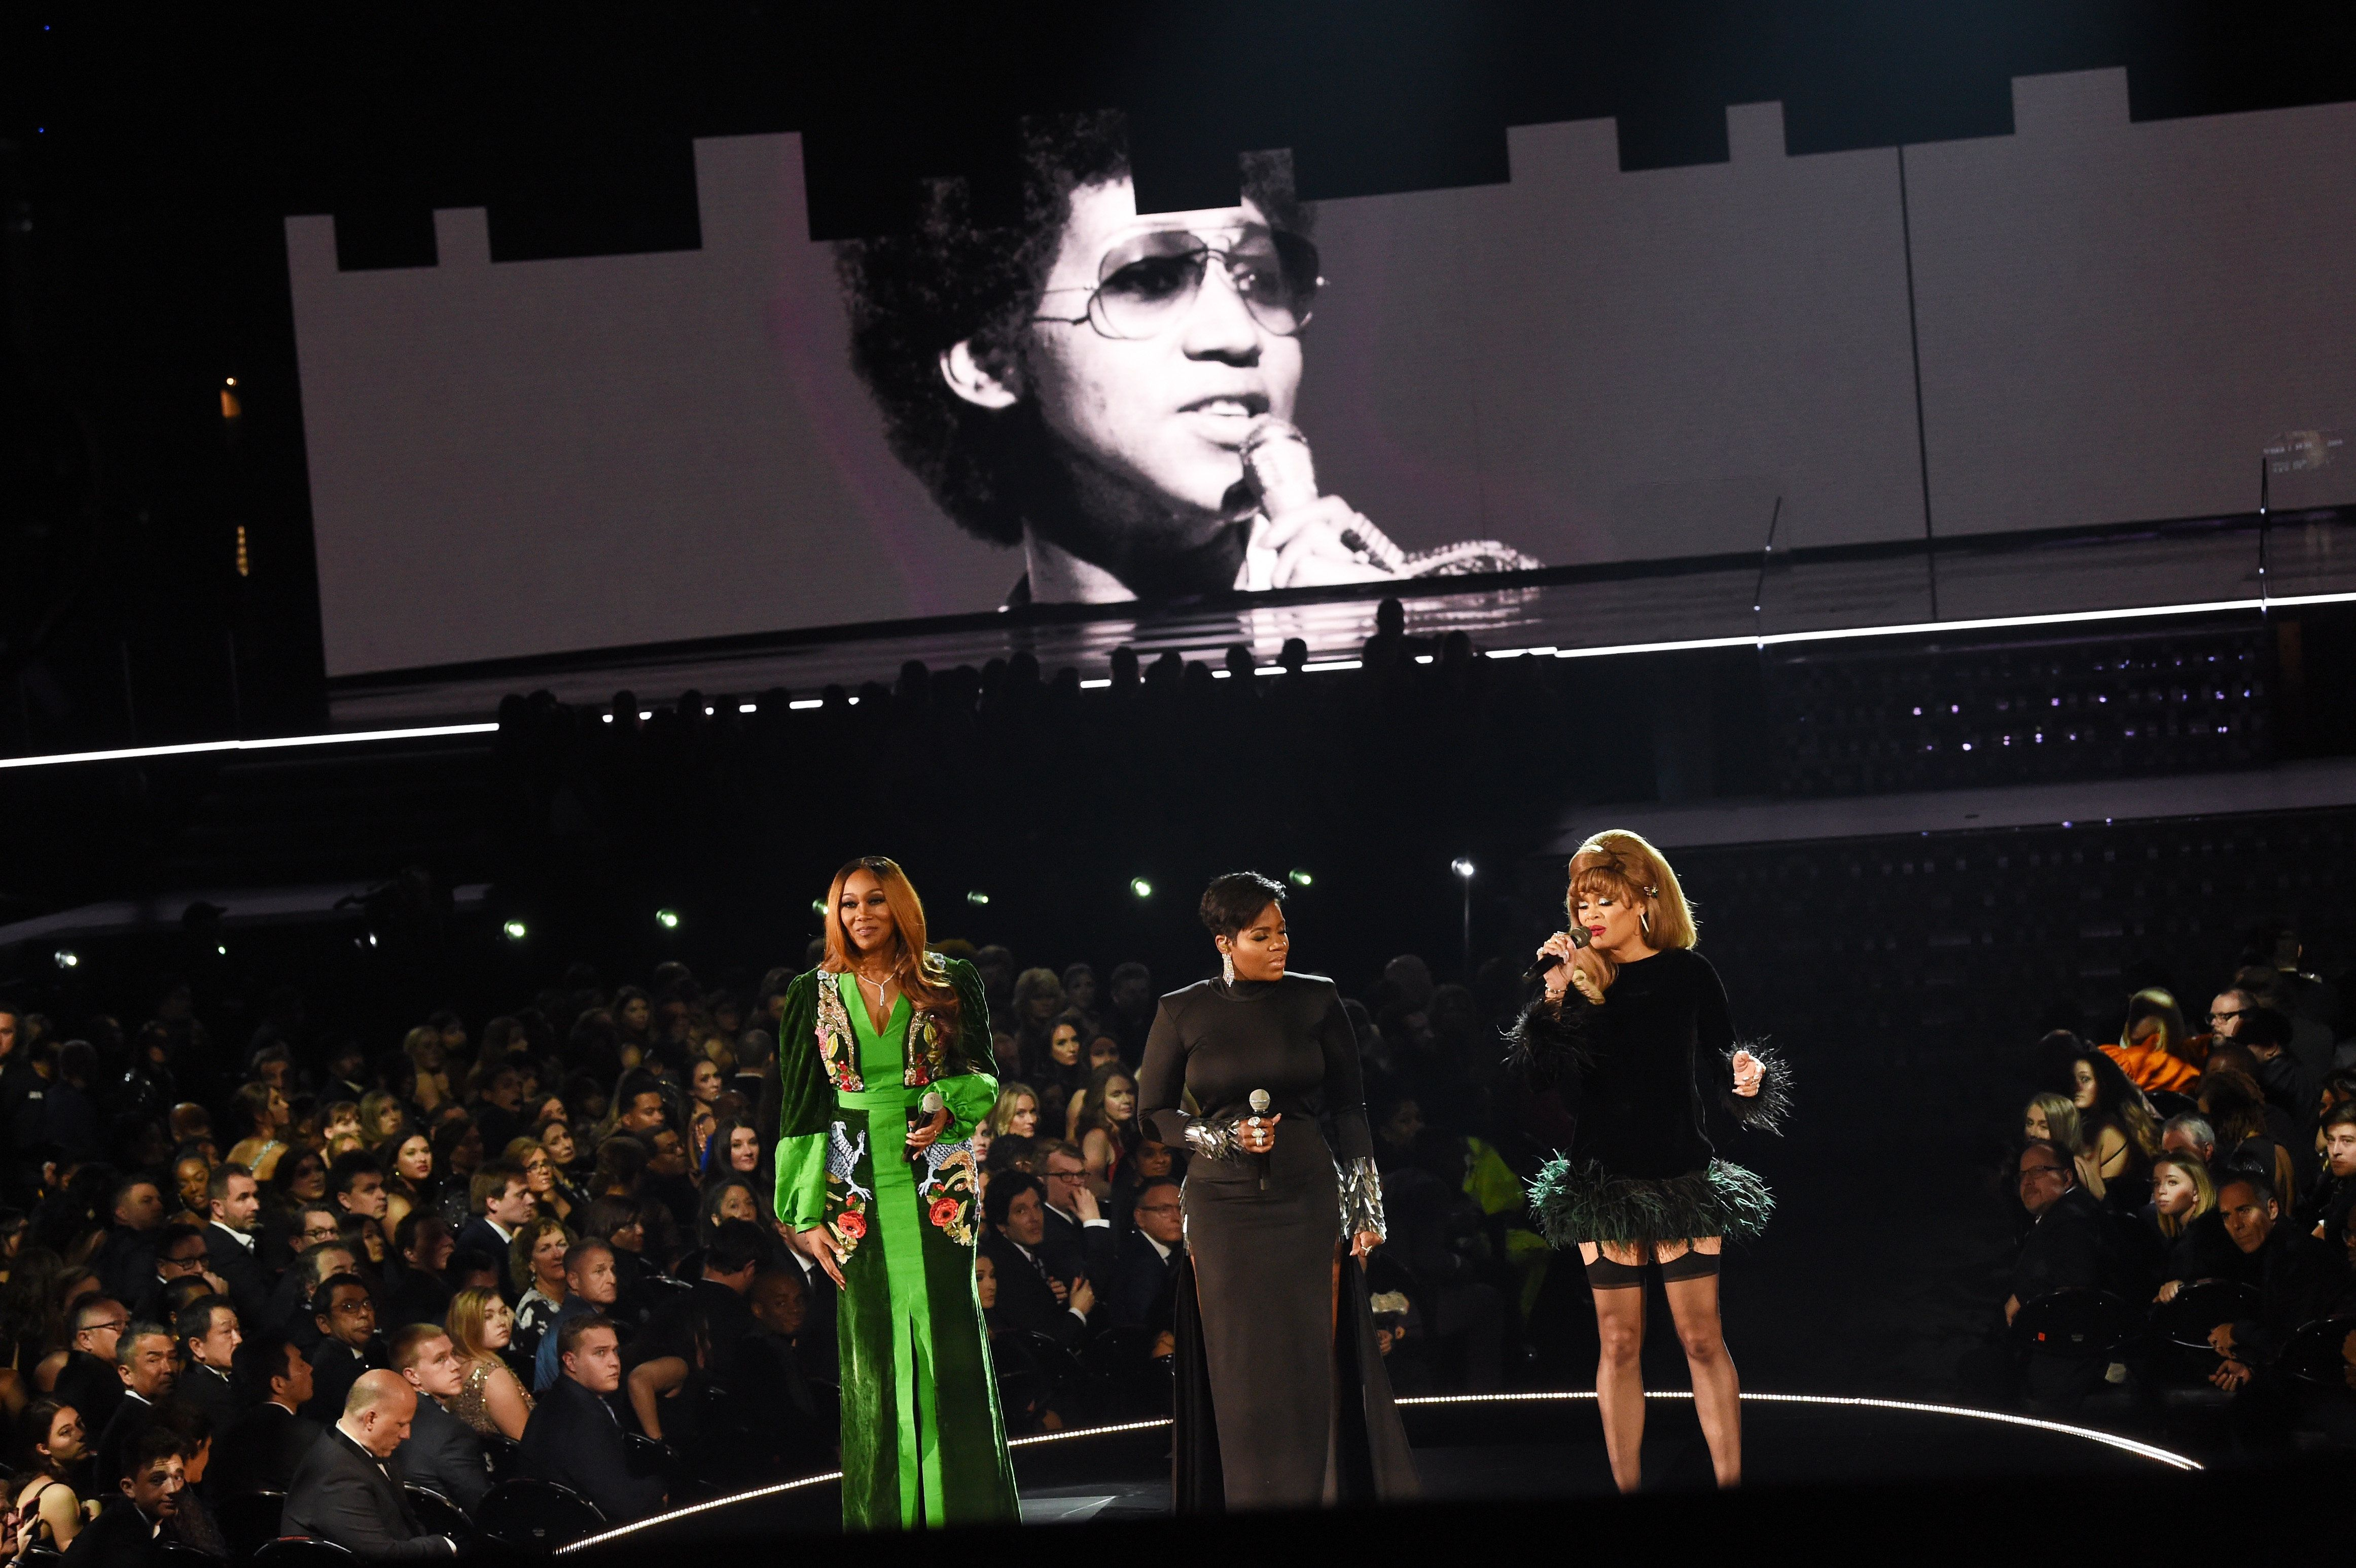 Yolanda Adams, Fantasia and Andra Day performed a powerful tribute to Aretha Franklin at the 2019 Grammy Awards.